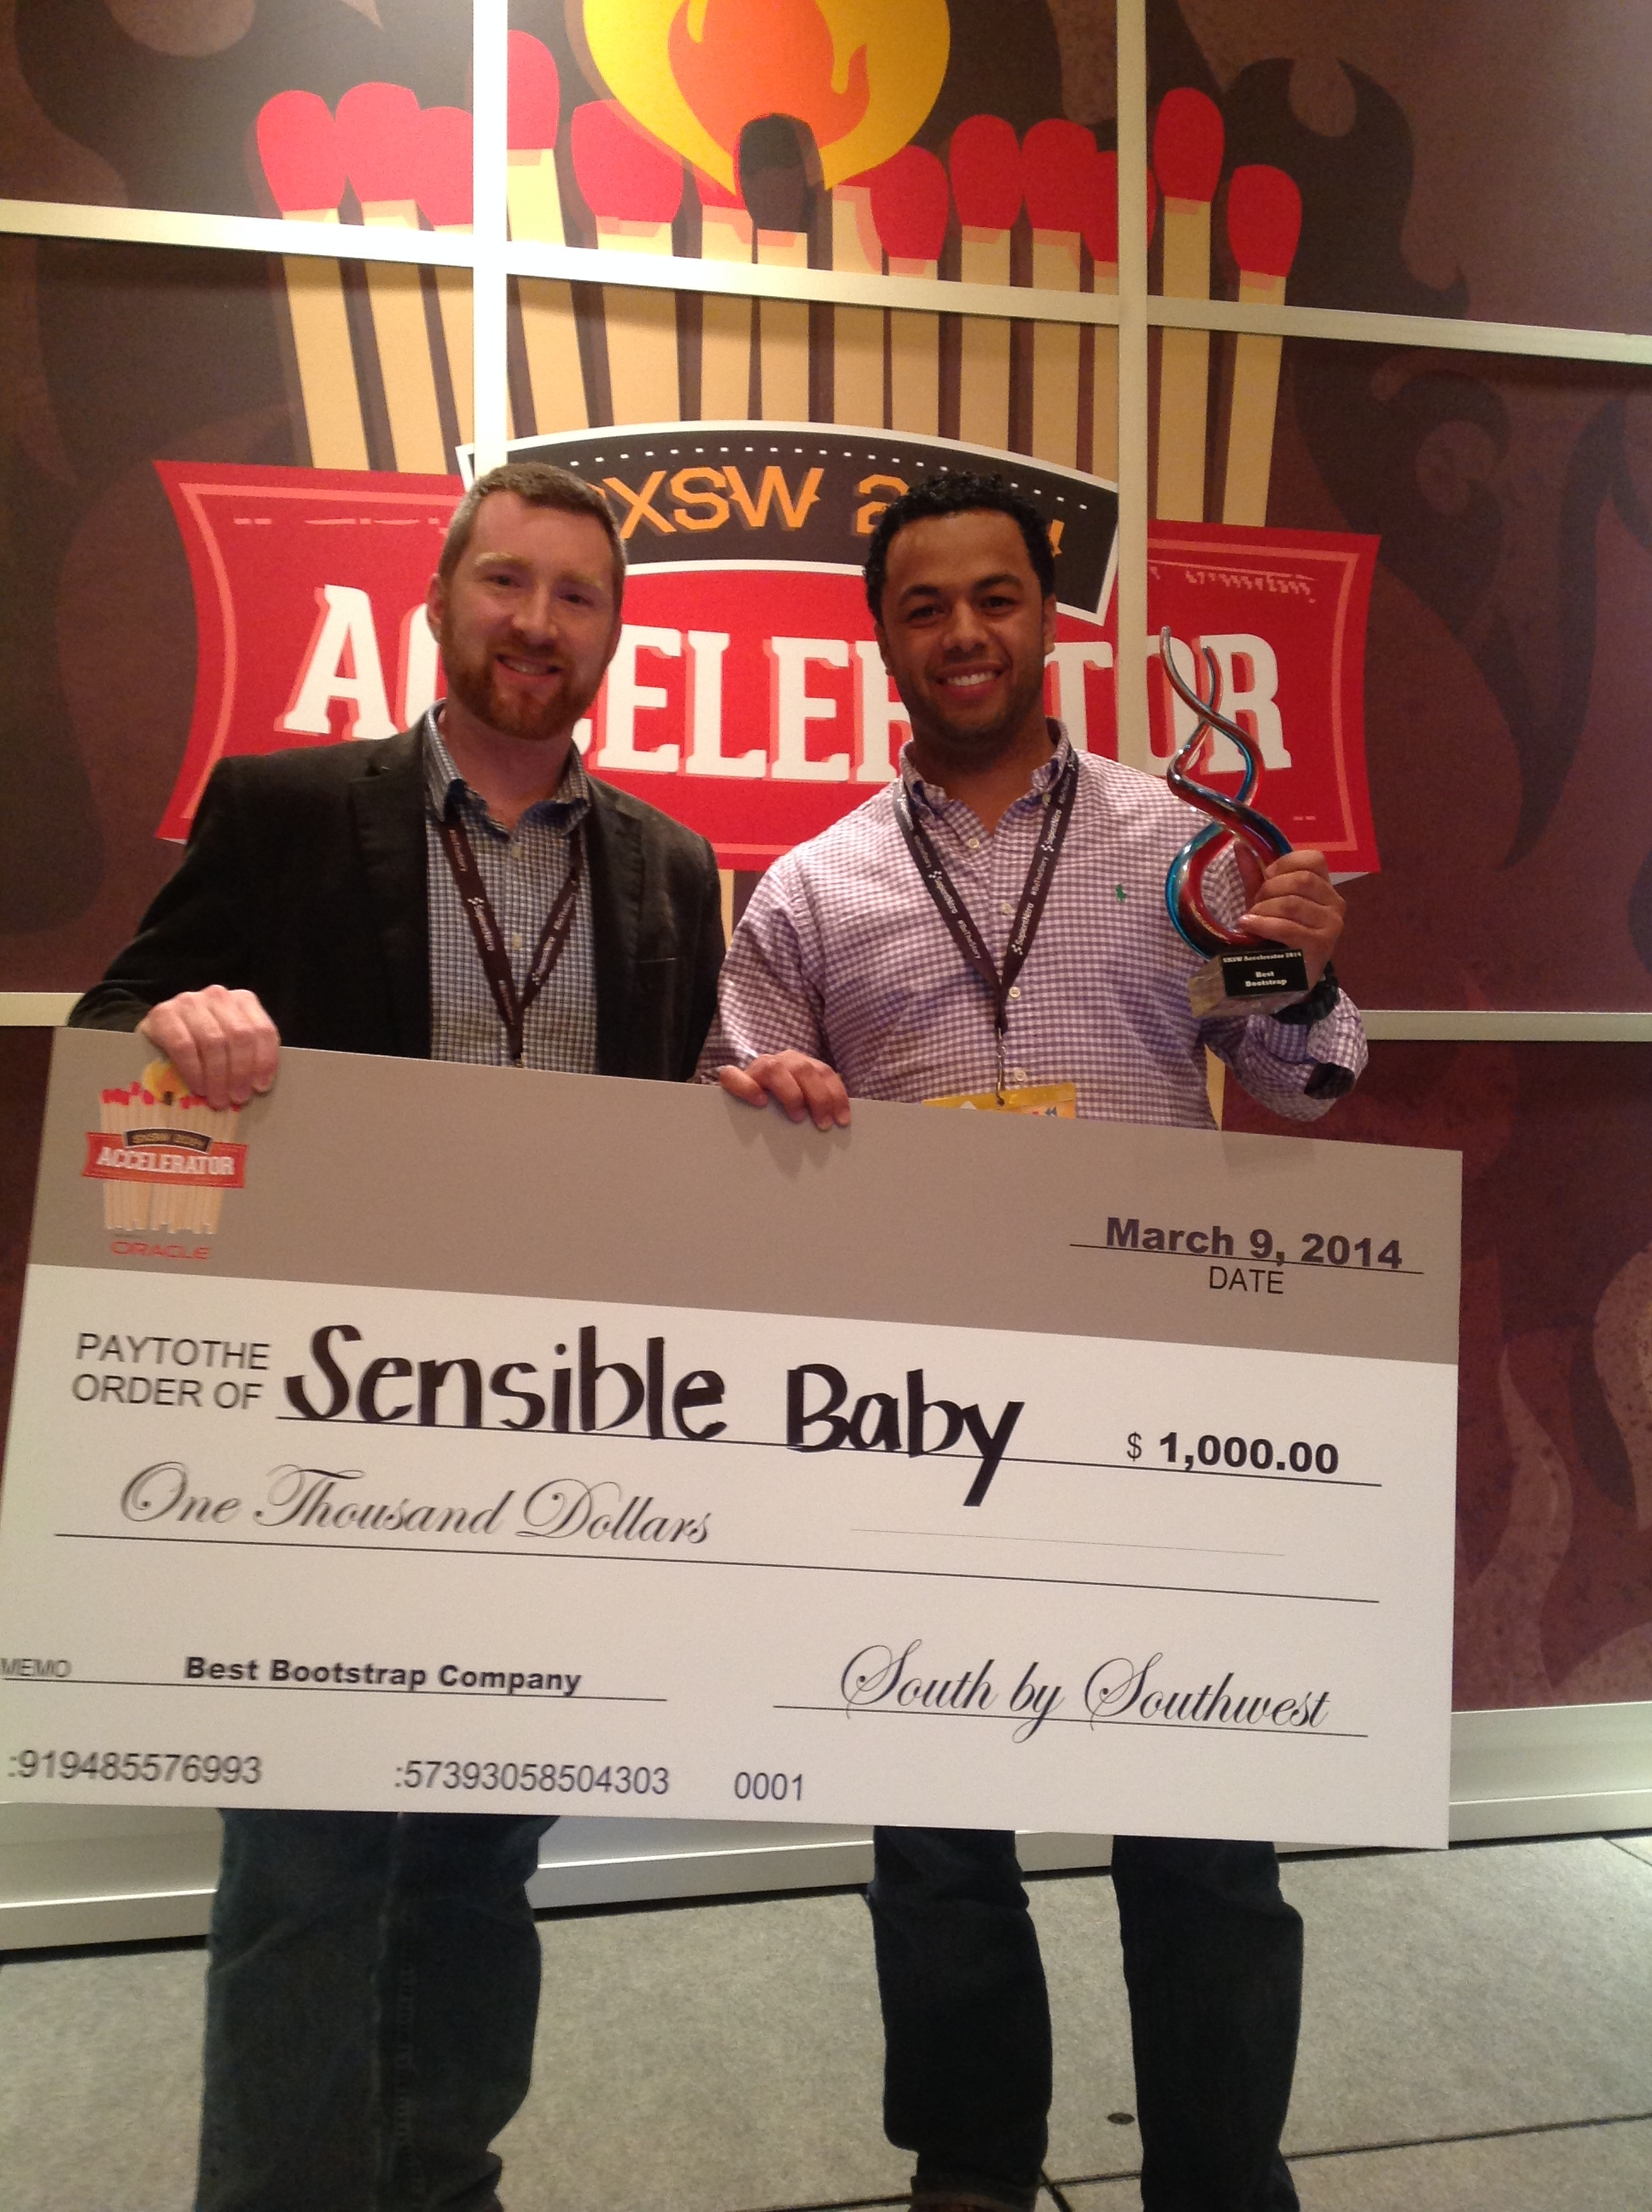 """Best Bootstrap Company"" winner at the 2014 SXSW Accelerator in Austin, TX"